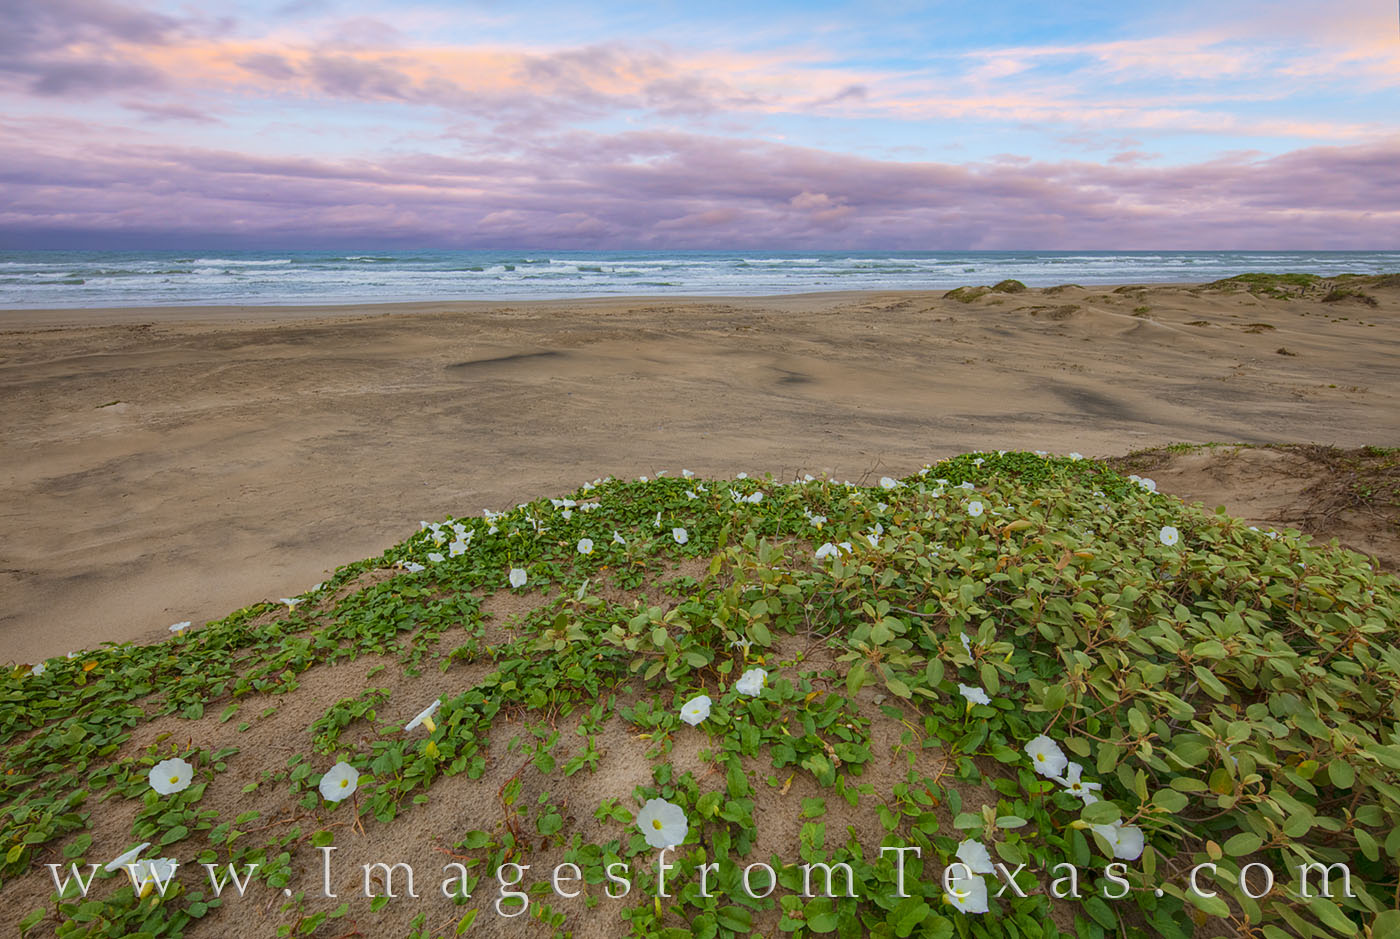 Texas coast, south padre island, south padre, gulf of mexico, morning glory, wildflowers, sand dunes, beach, sand, ocean, sunset, photo